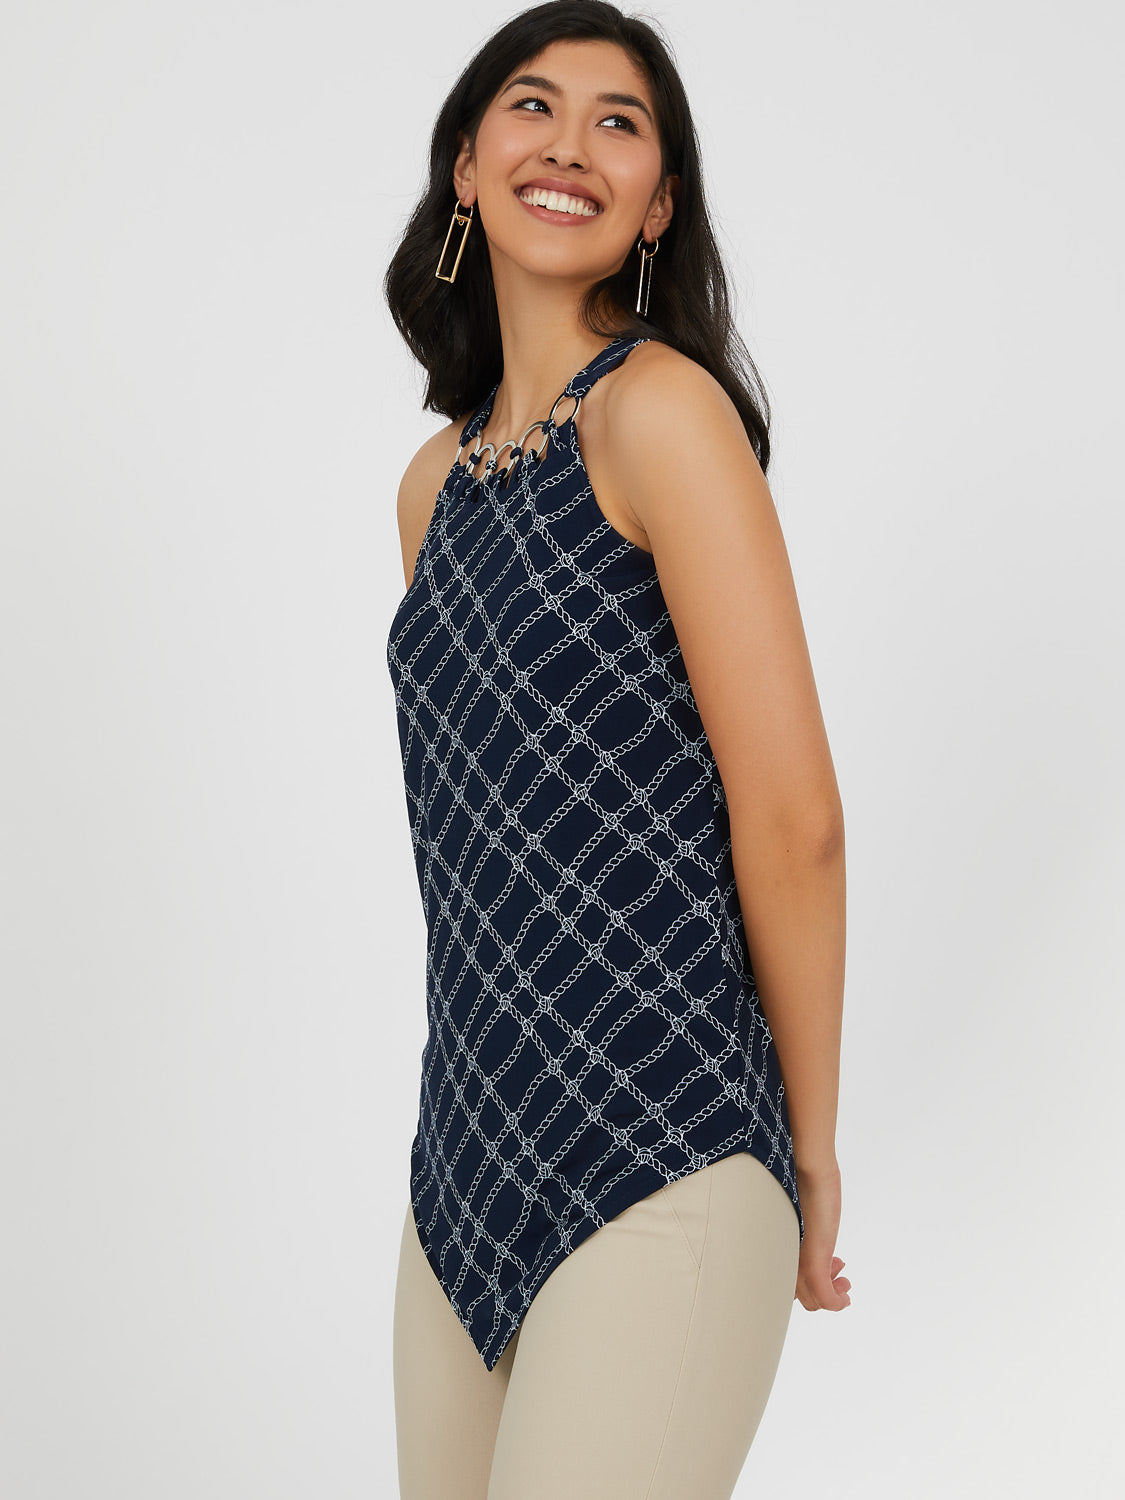 Printed Halter Top Hanker Chief Top